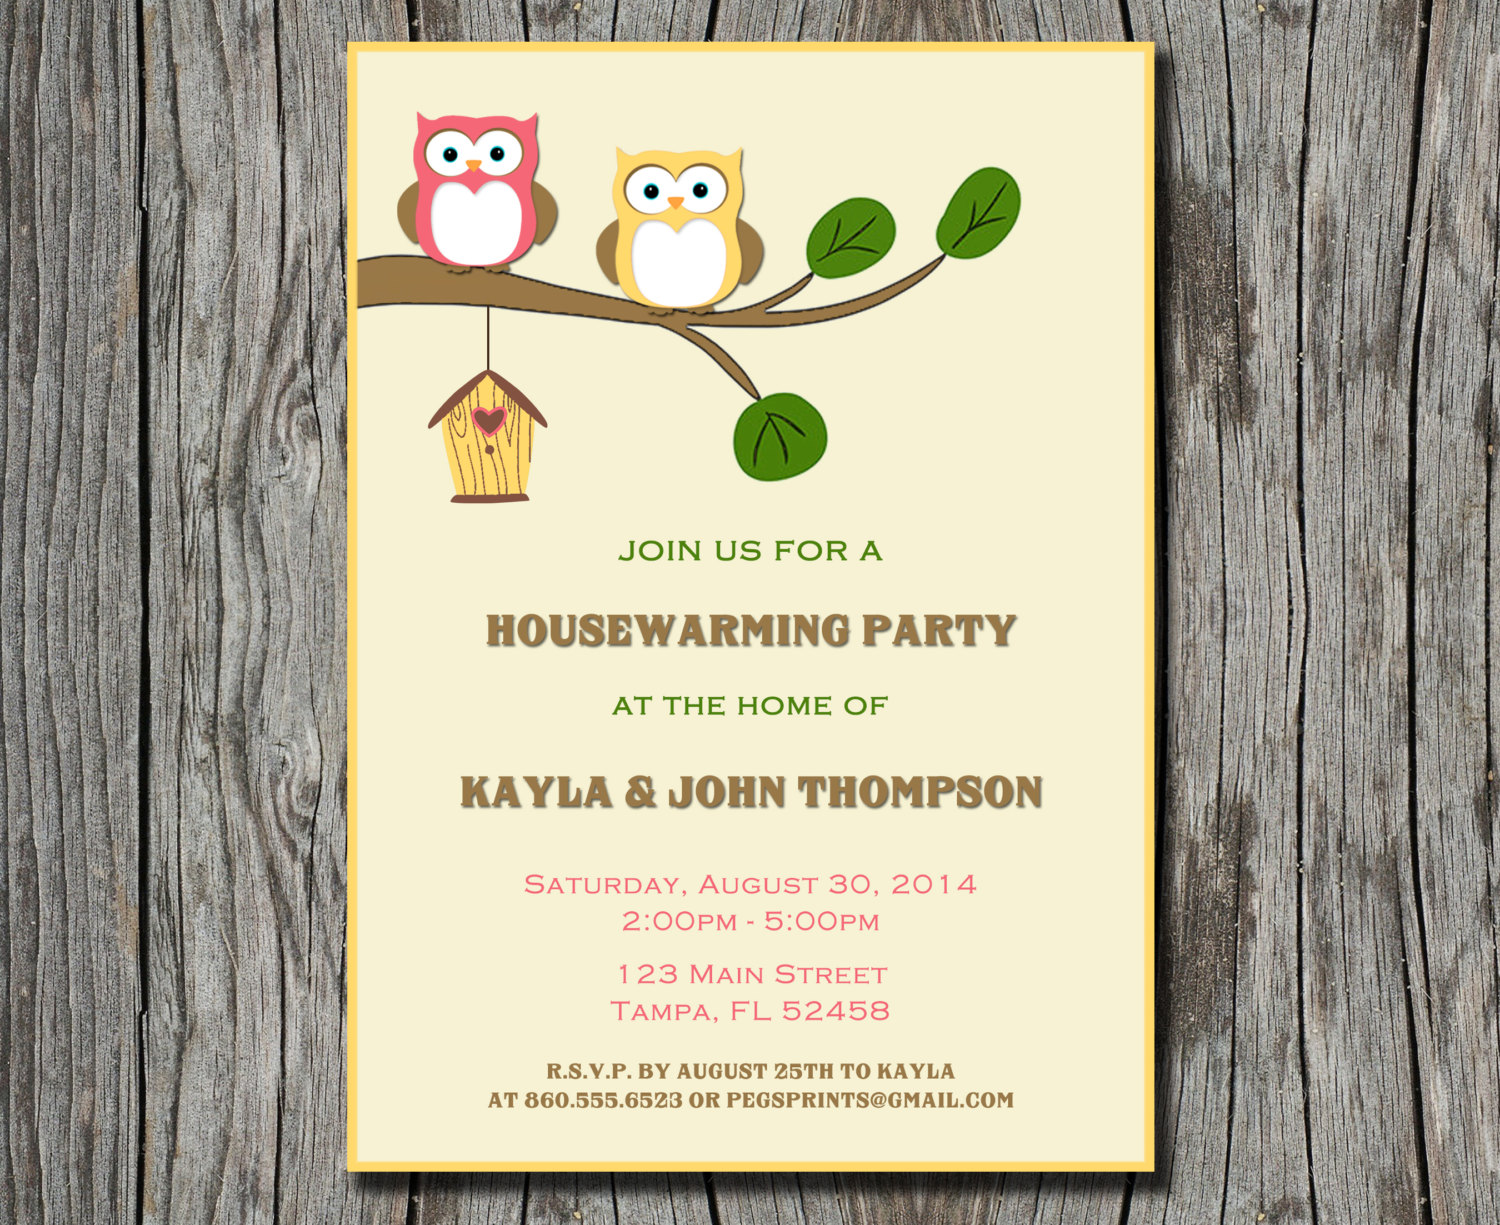 Owl Housewarming Party Invitation (Printable) by PegsPrints on Zibbet